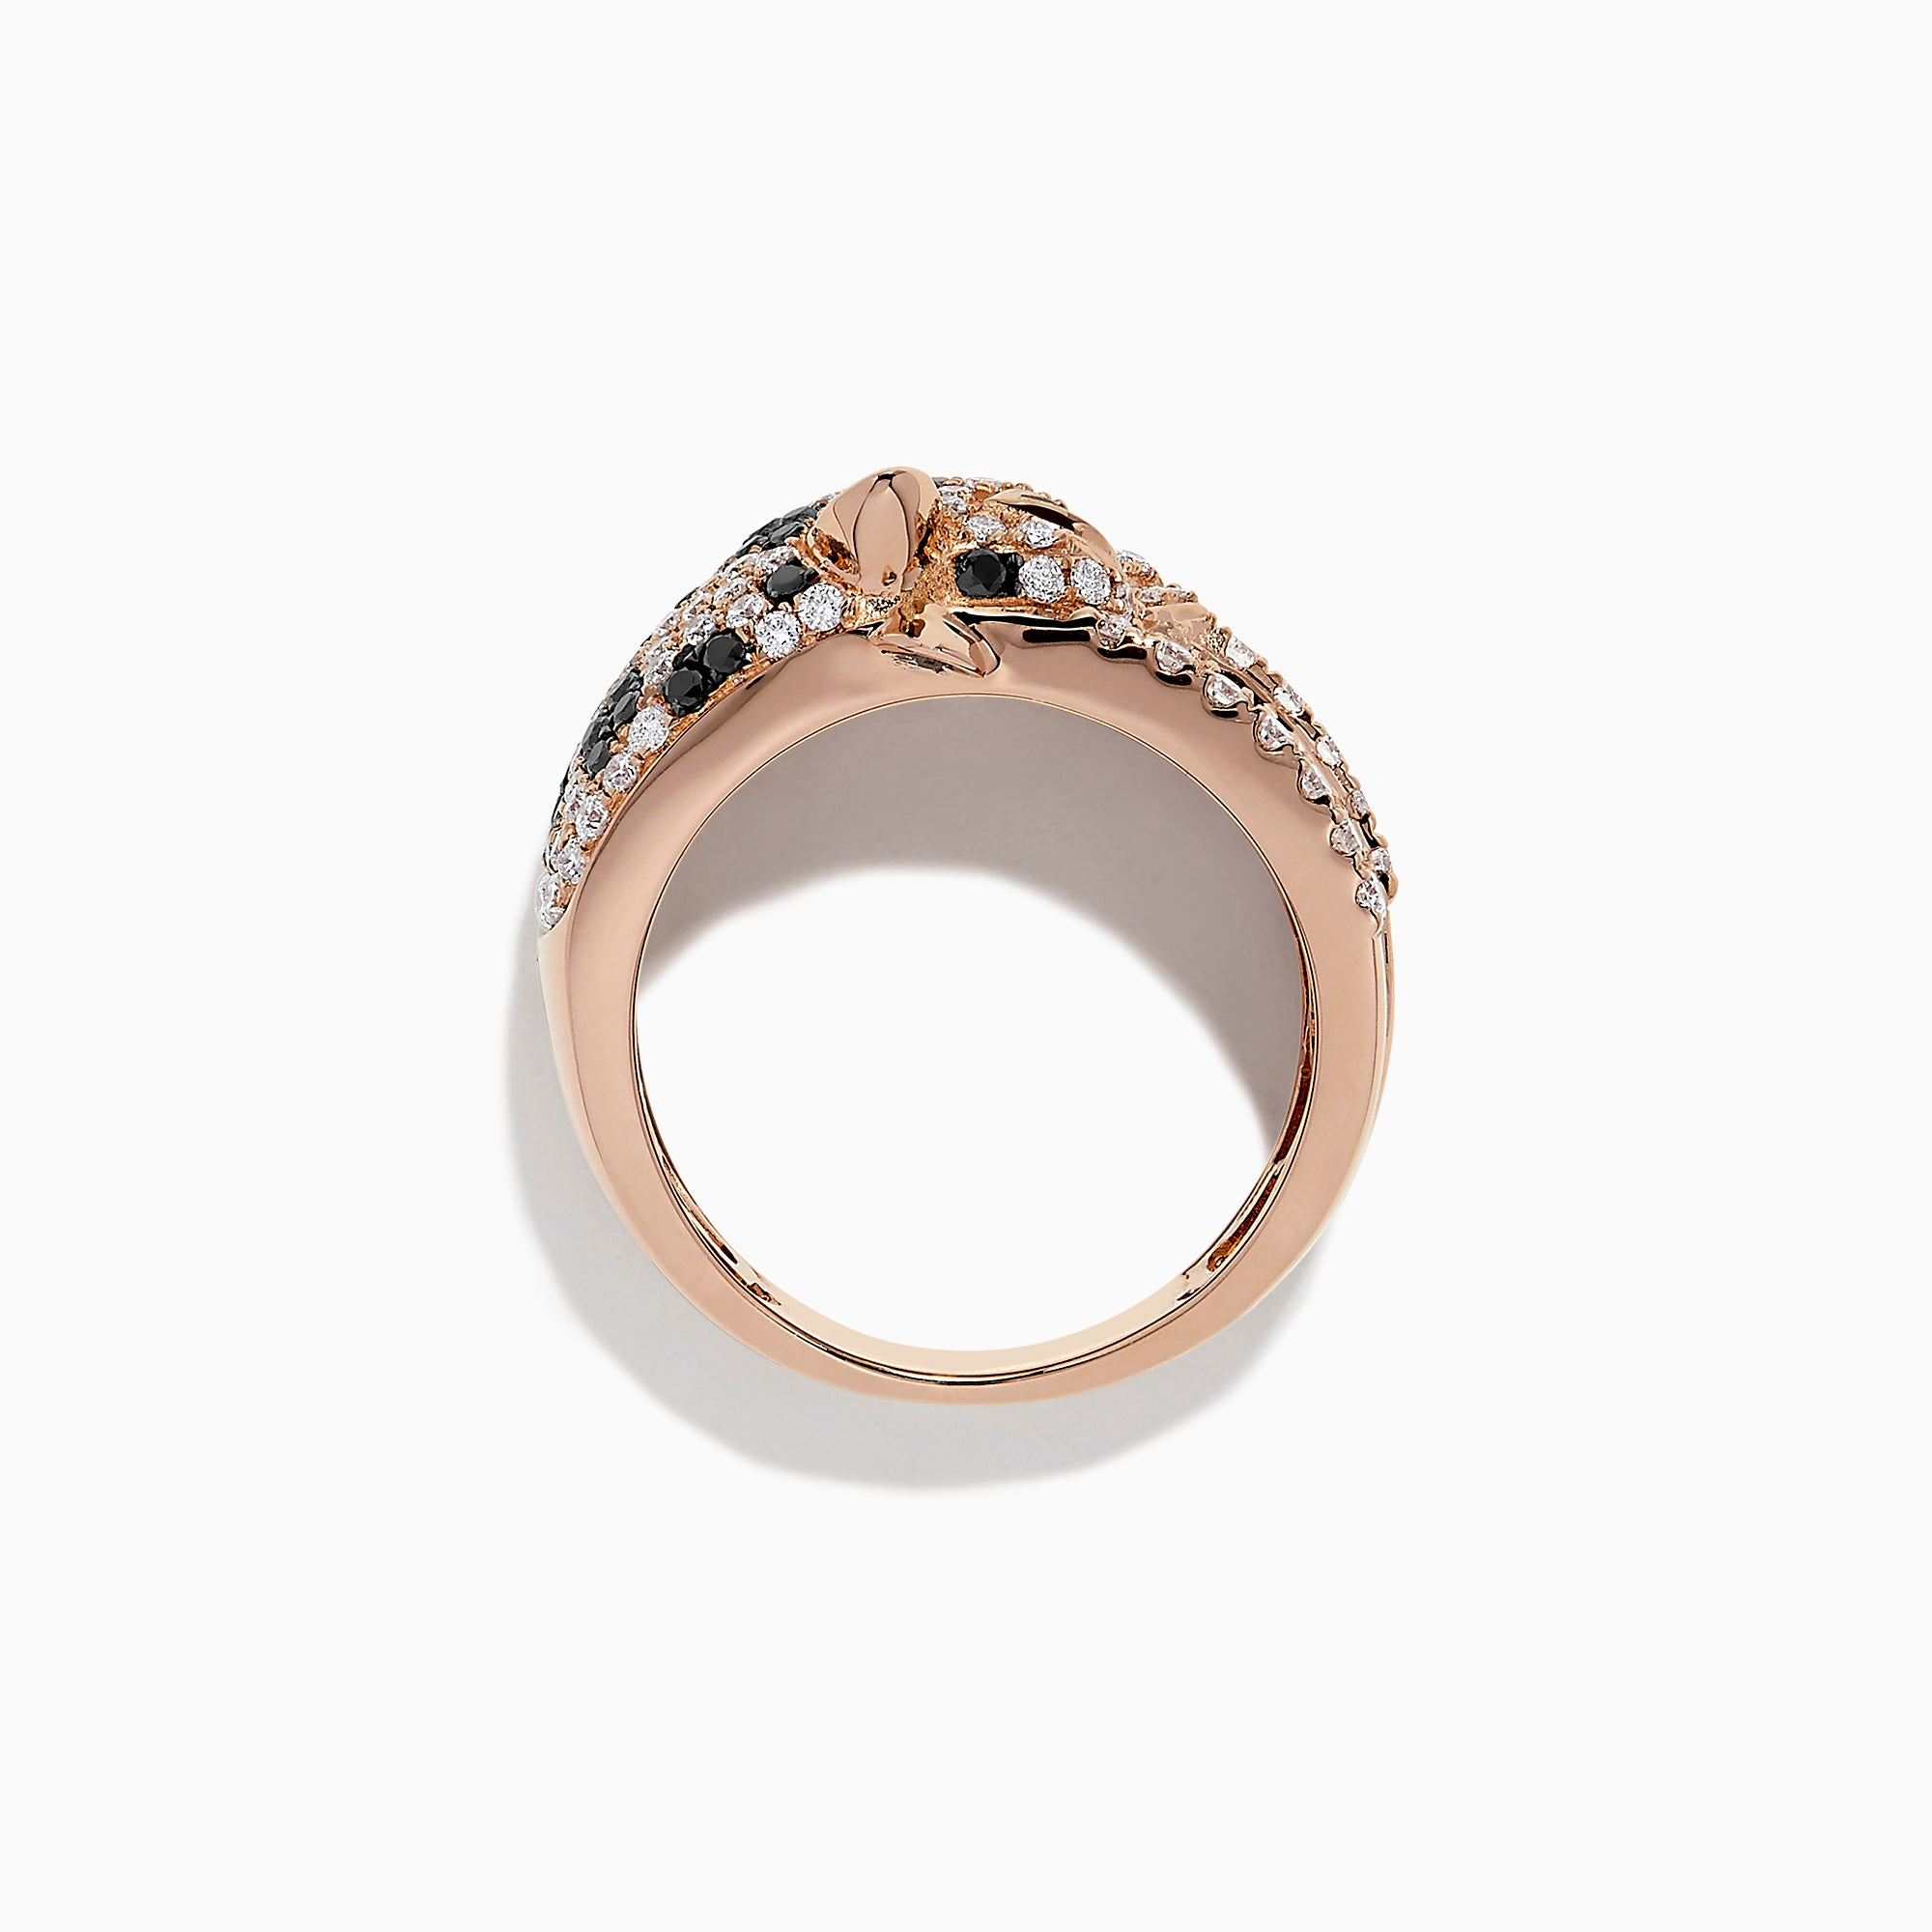 Effy Signature 14K Rose Gold Diamond Panther Ring, 1.54 TCW